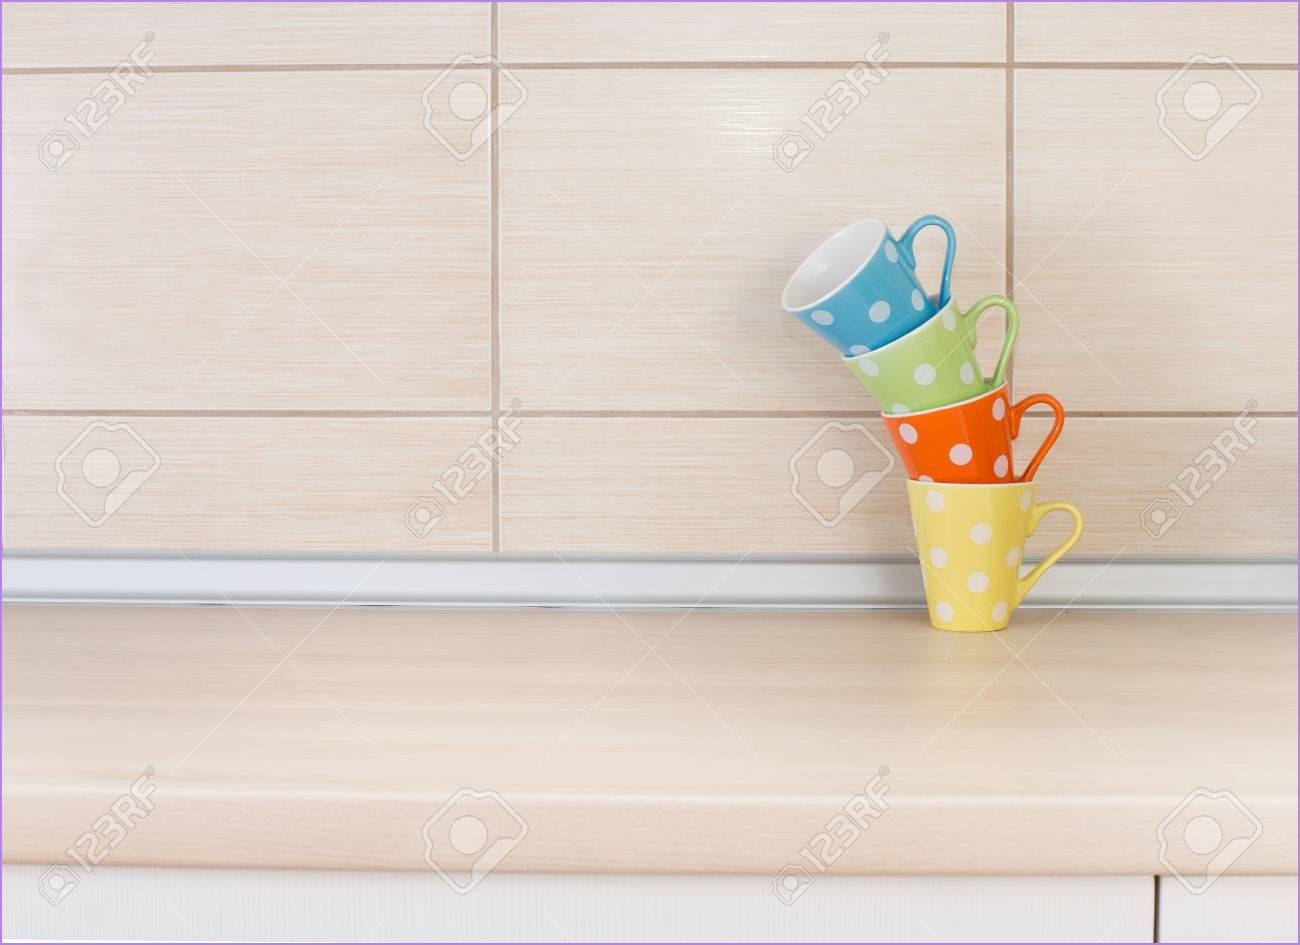 ceramic tile vs hardwood flooring of kitchen countertop ceramic tile close up od four colorful spotted pertaining to kitchen countertop ceramic tile close up od four colorful spotted tea cups the wooden countertop